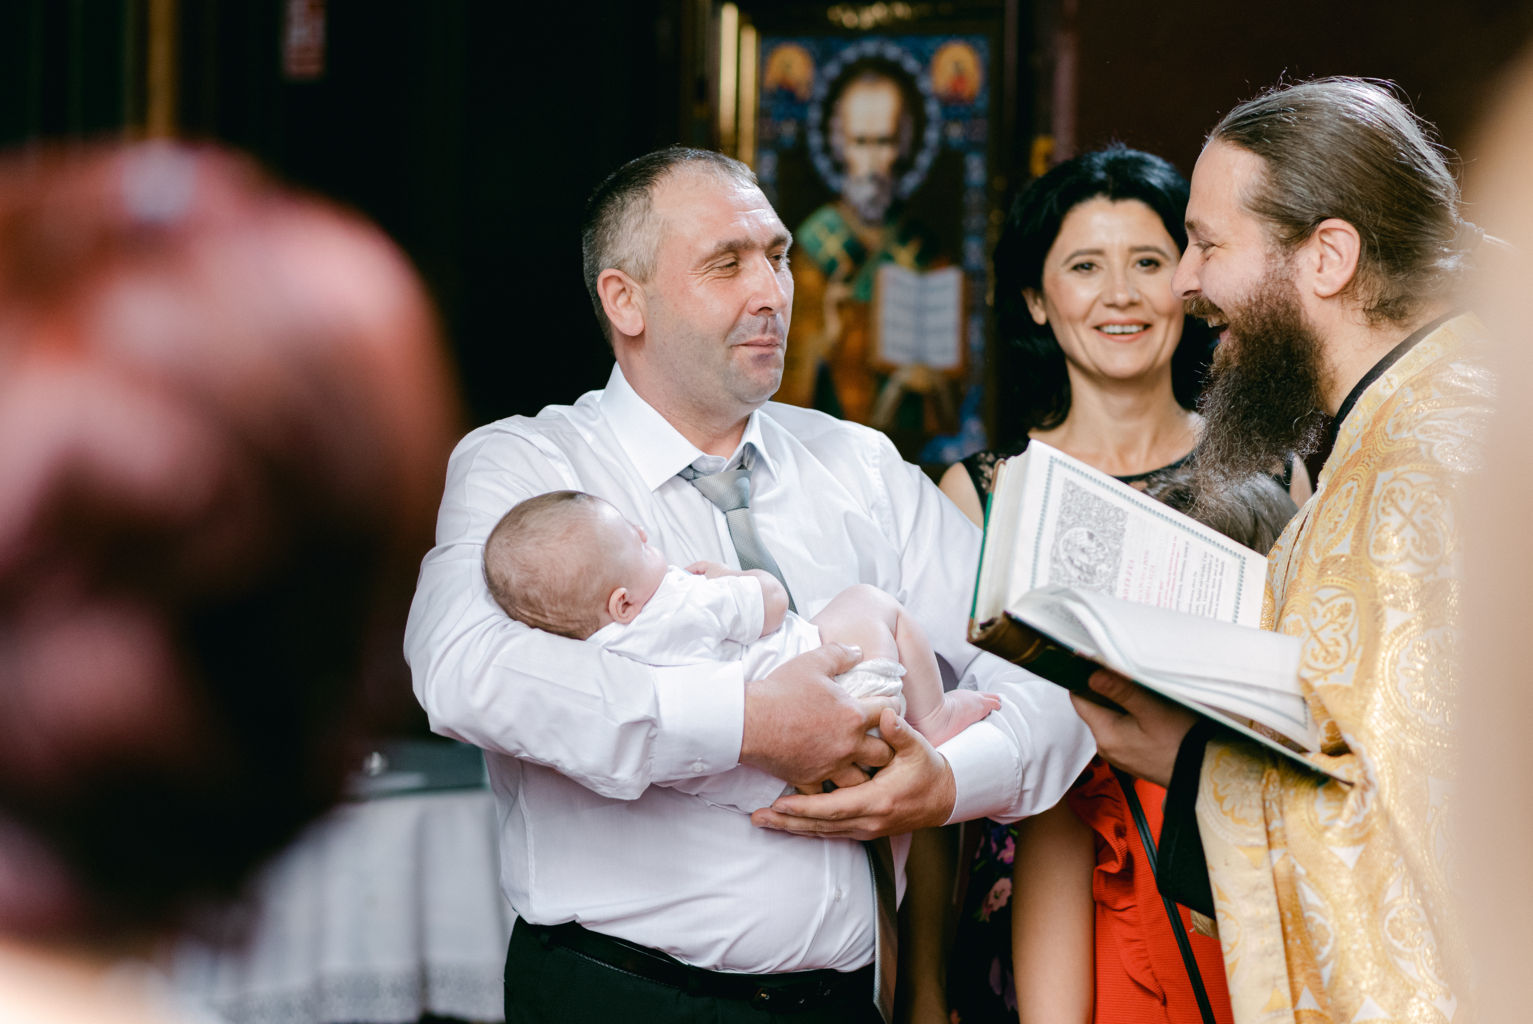 baptism photographer Paris France